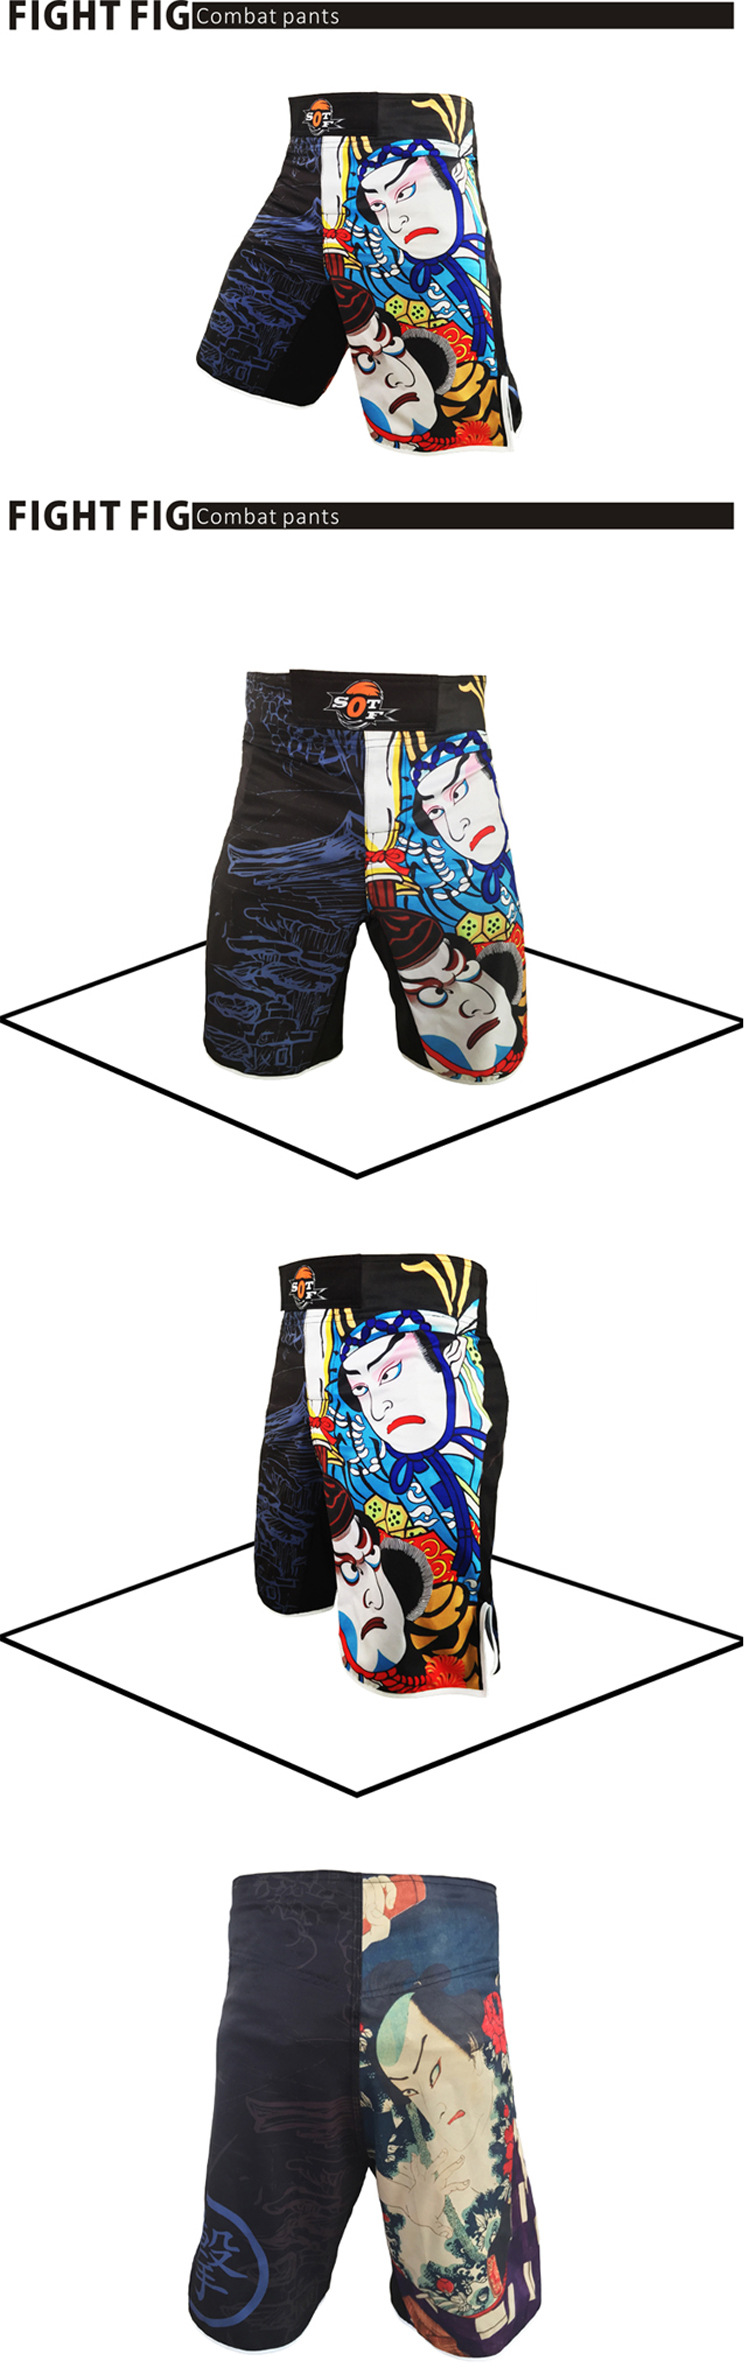 Real-Printing Boxing Shorts MMA grappling Fight Boxing MMA Sanda Muay Thai New